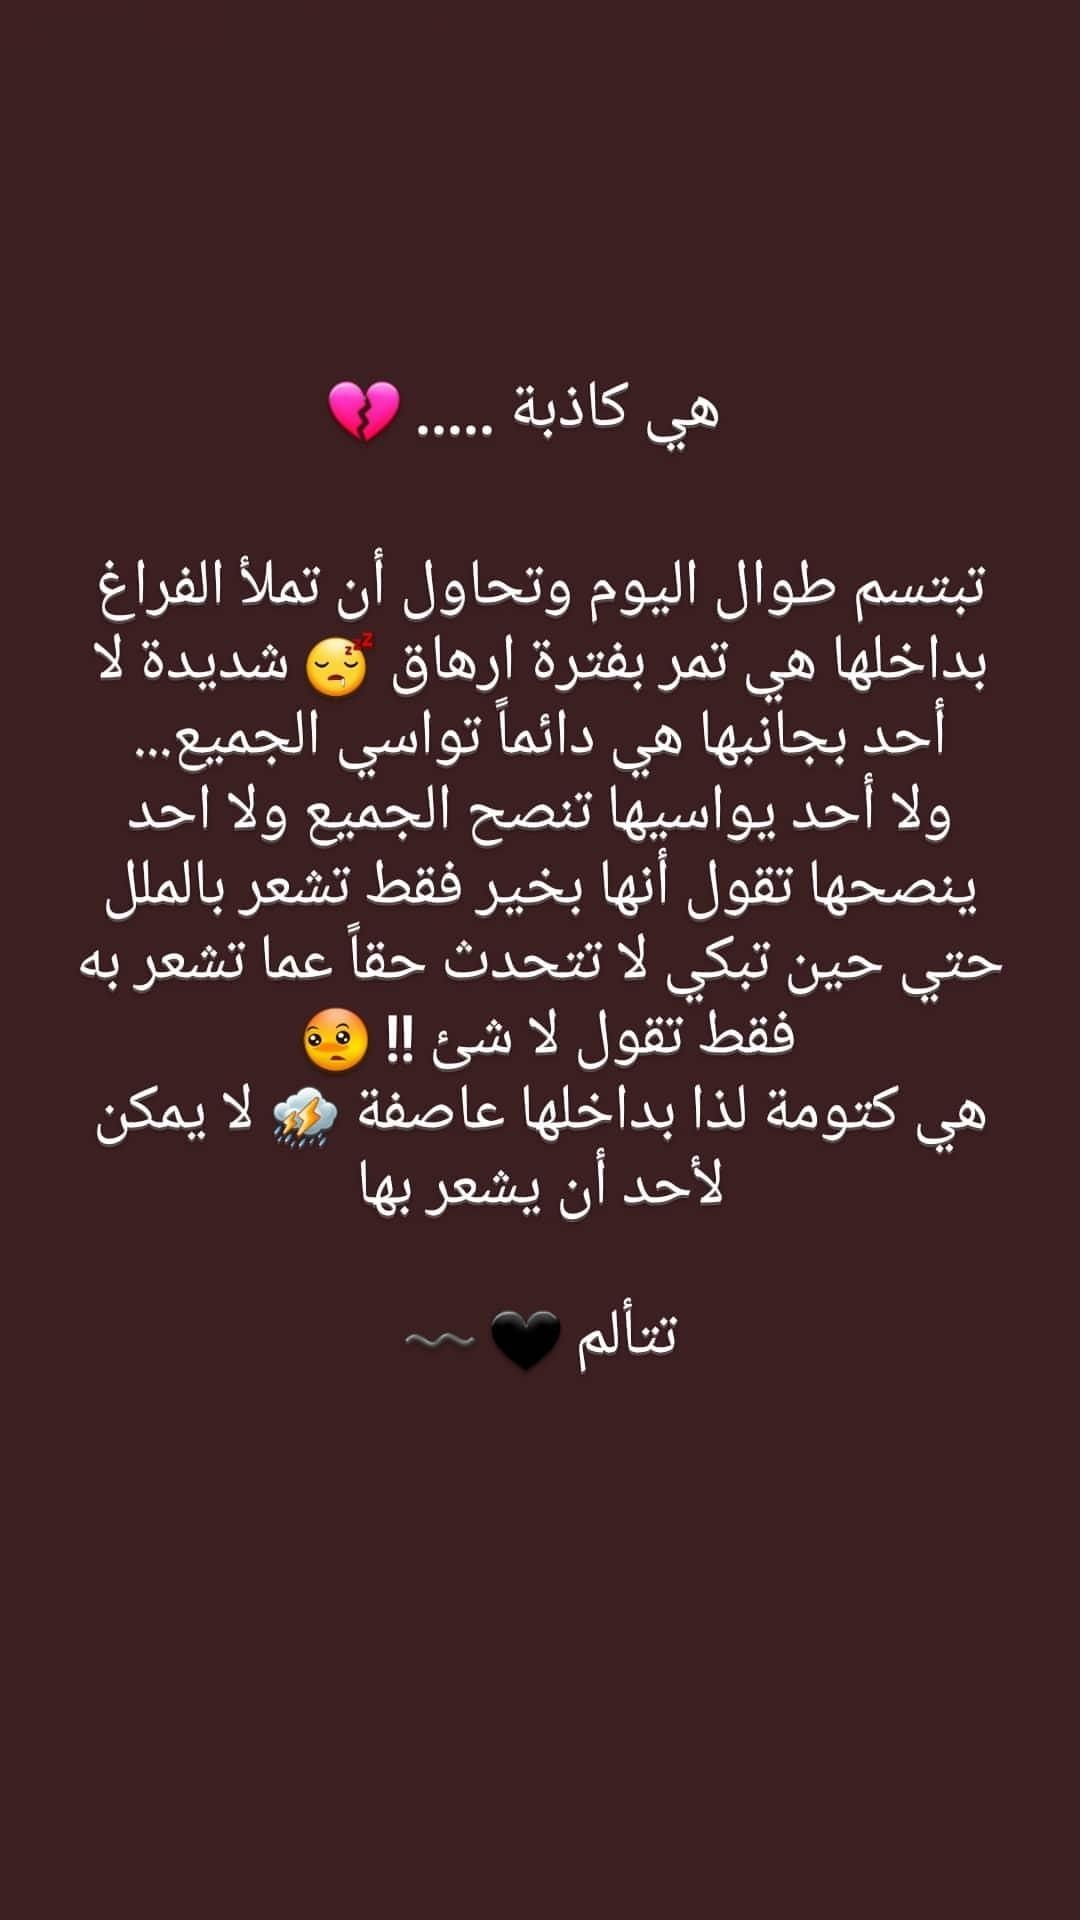 Pin By انا مبدعة On Me Love Quotes For Him Funny Mood Quotes Arabic Love Quotes